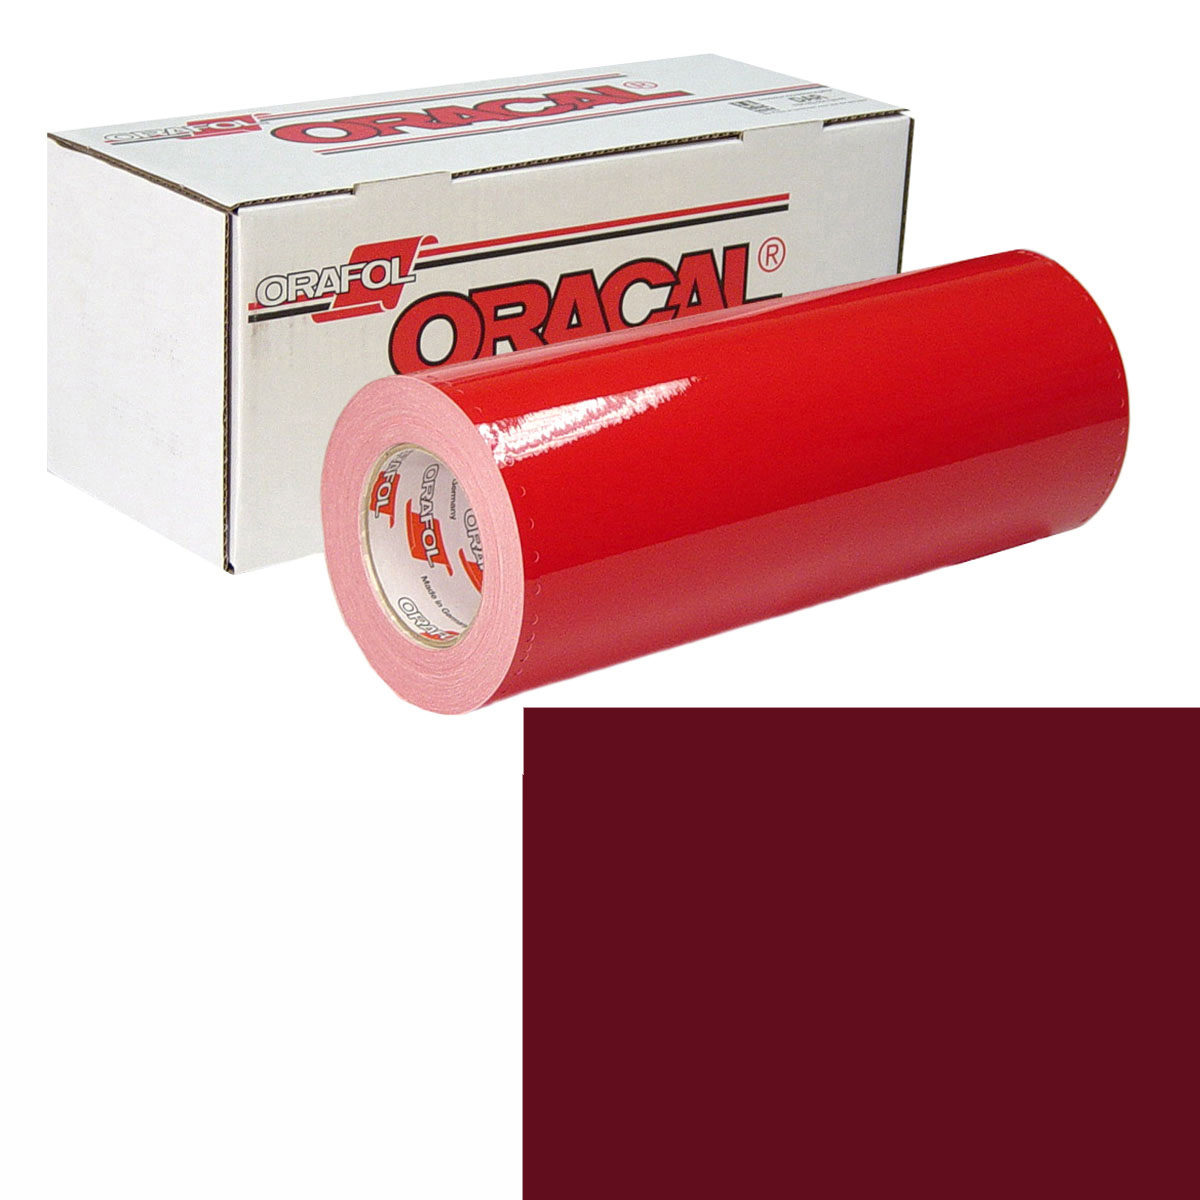 ORACAL 951 15In X 50Yd 030 Dark Red